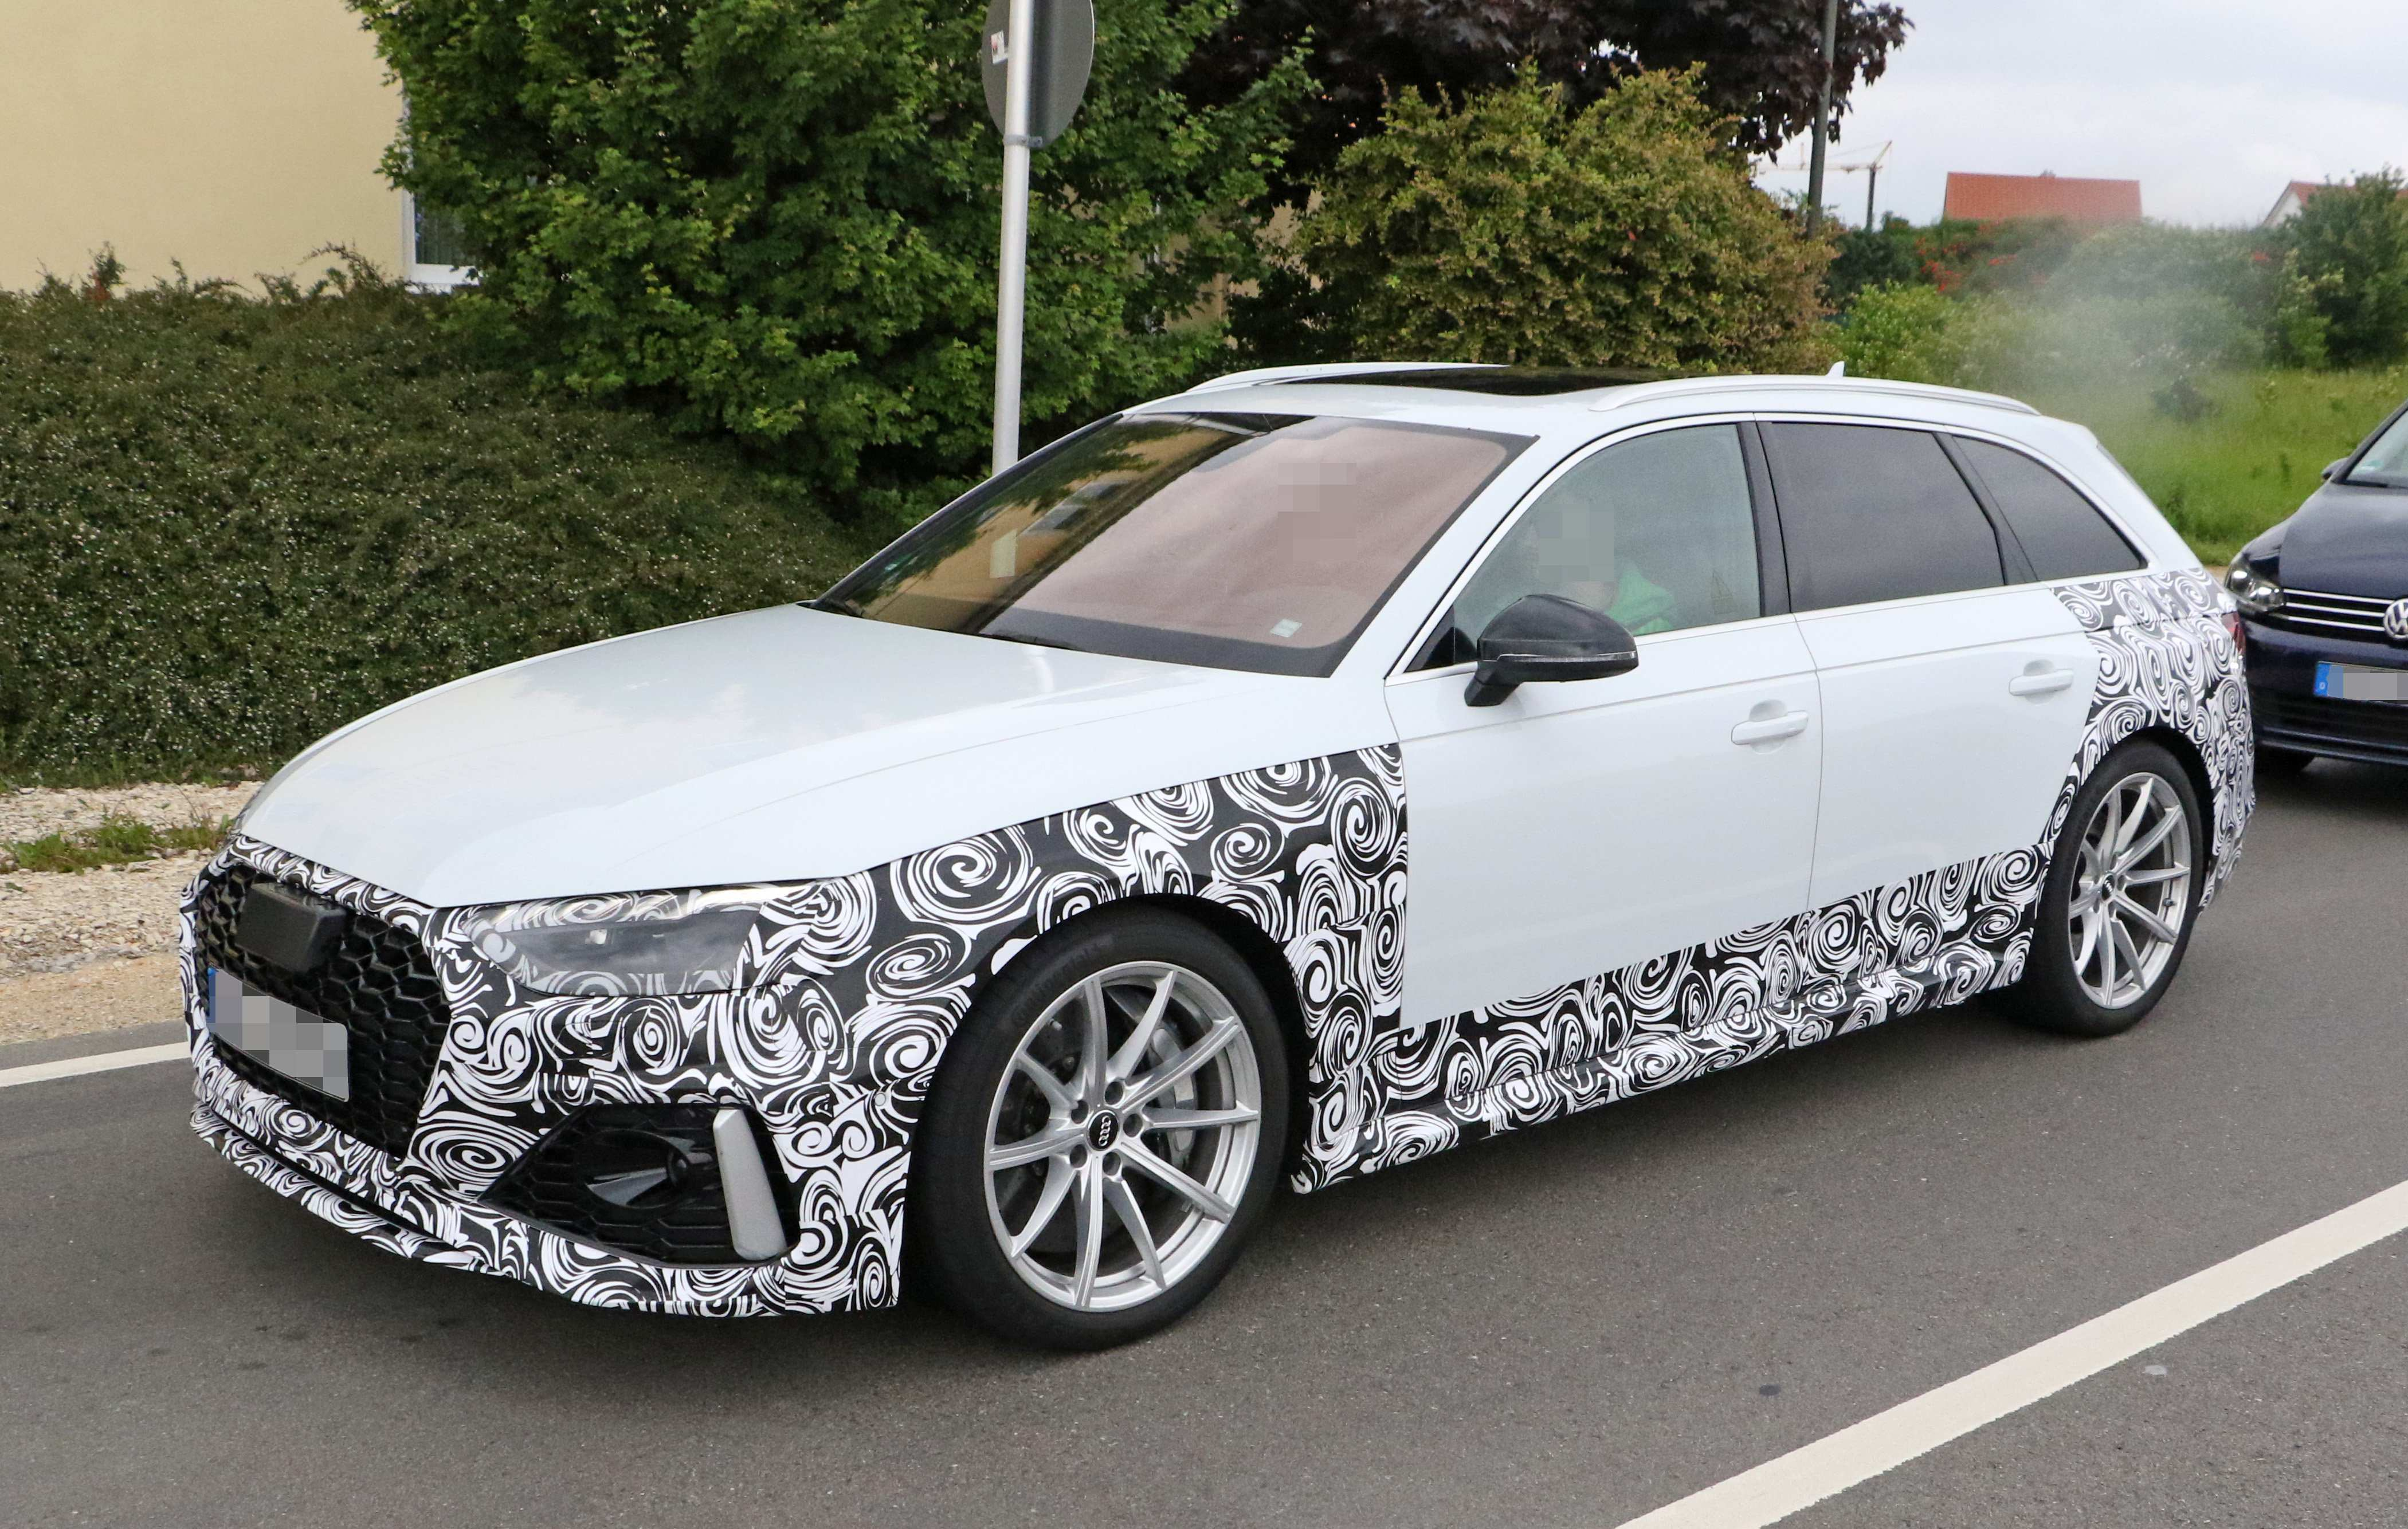 51 Best 2020 Audi Rs4 Exterior And Interior